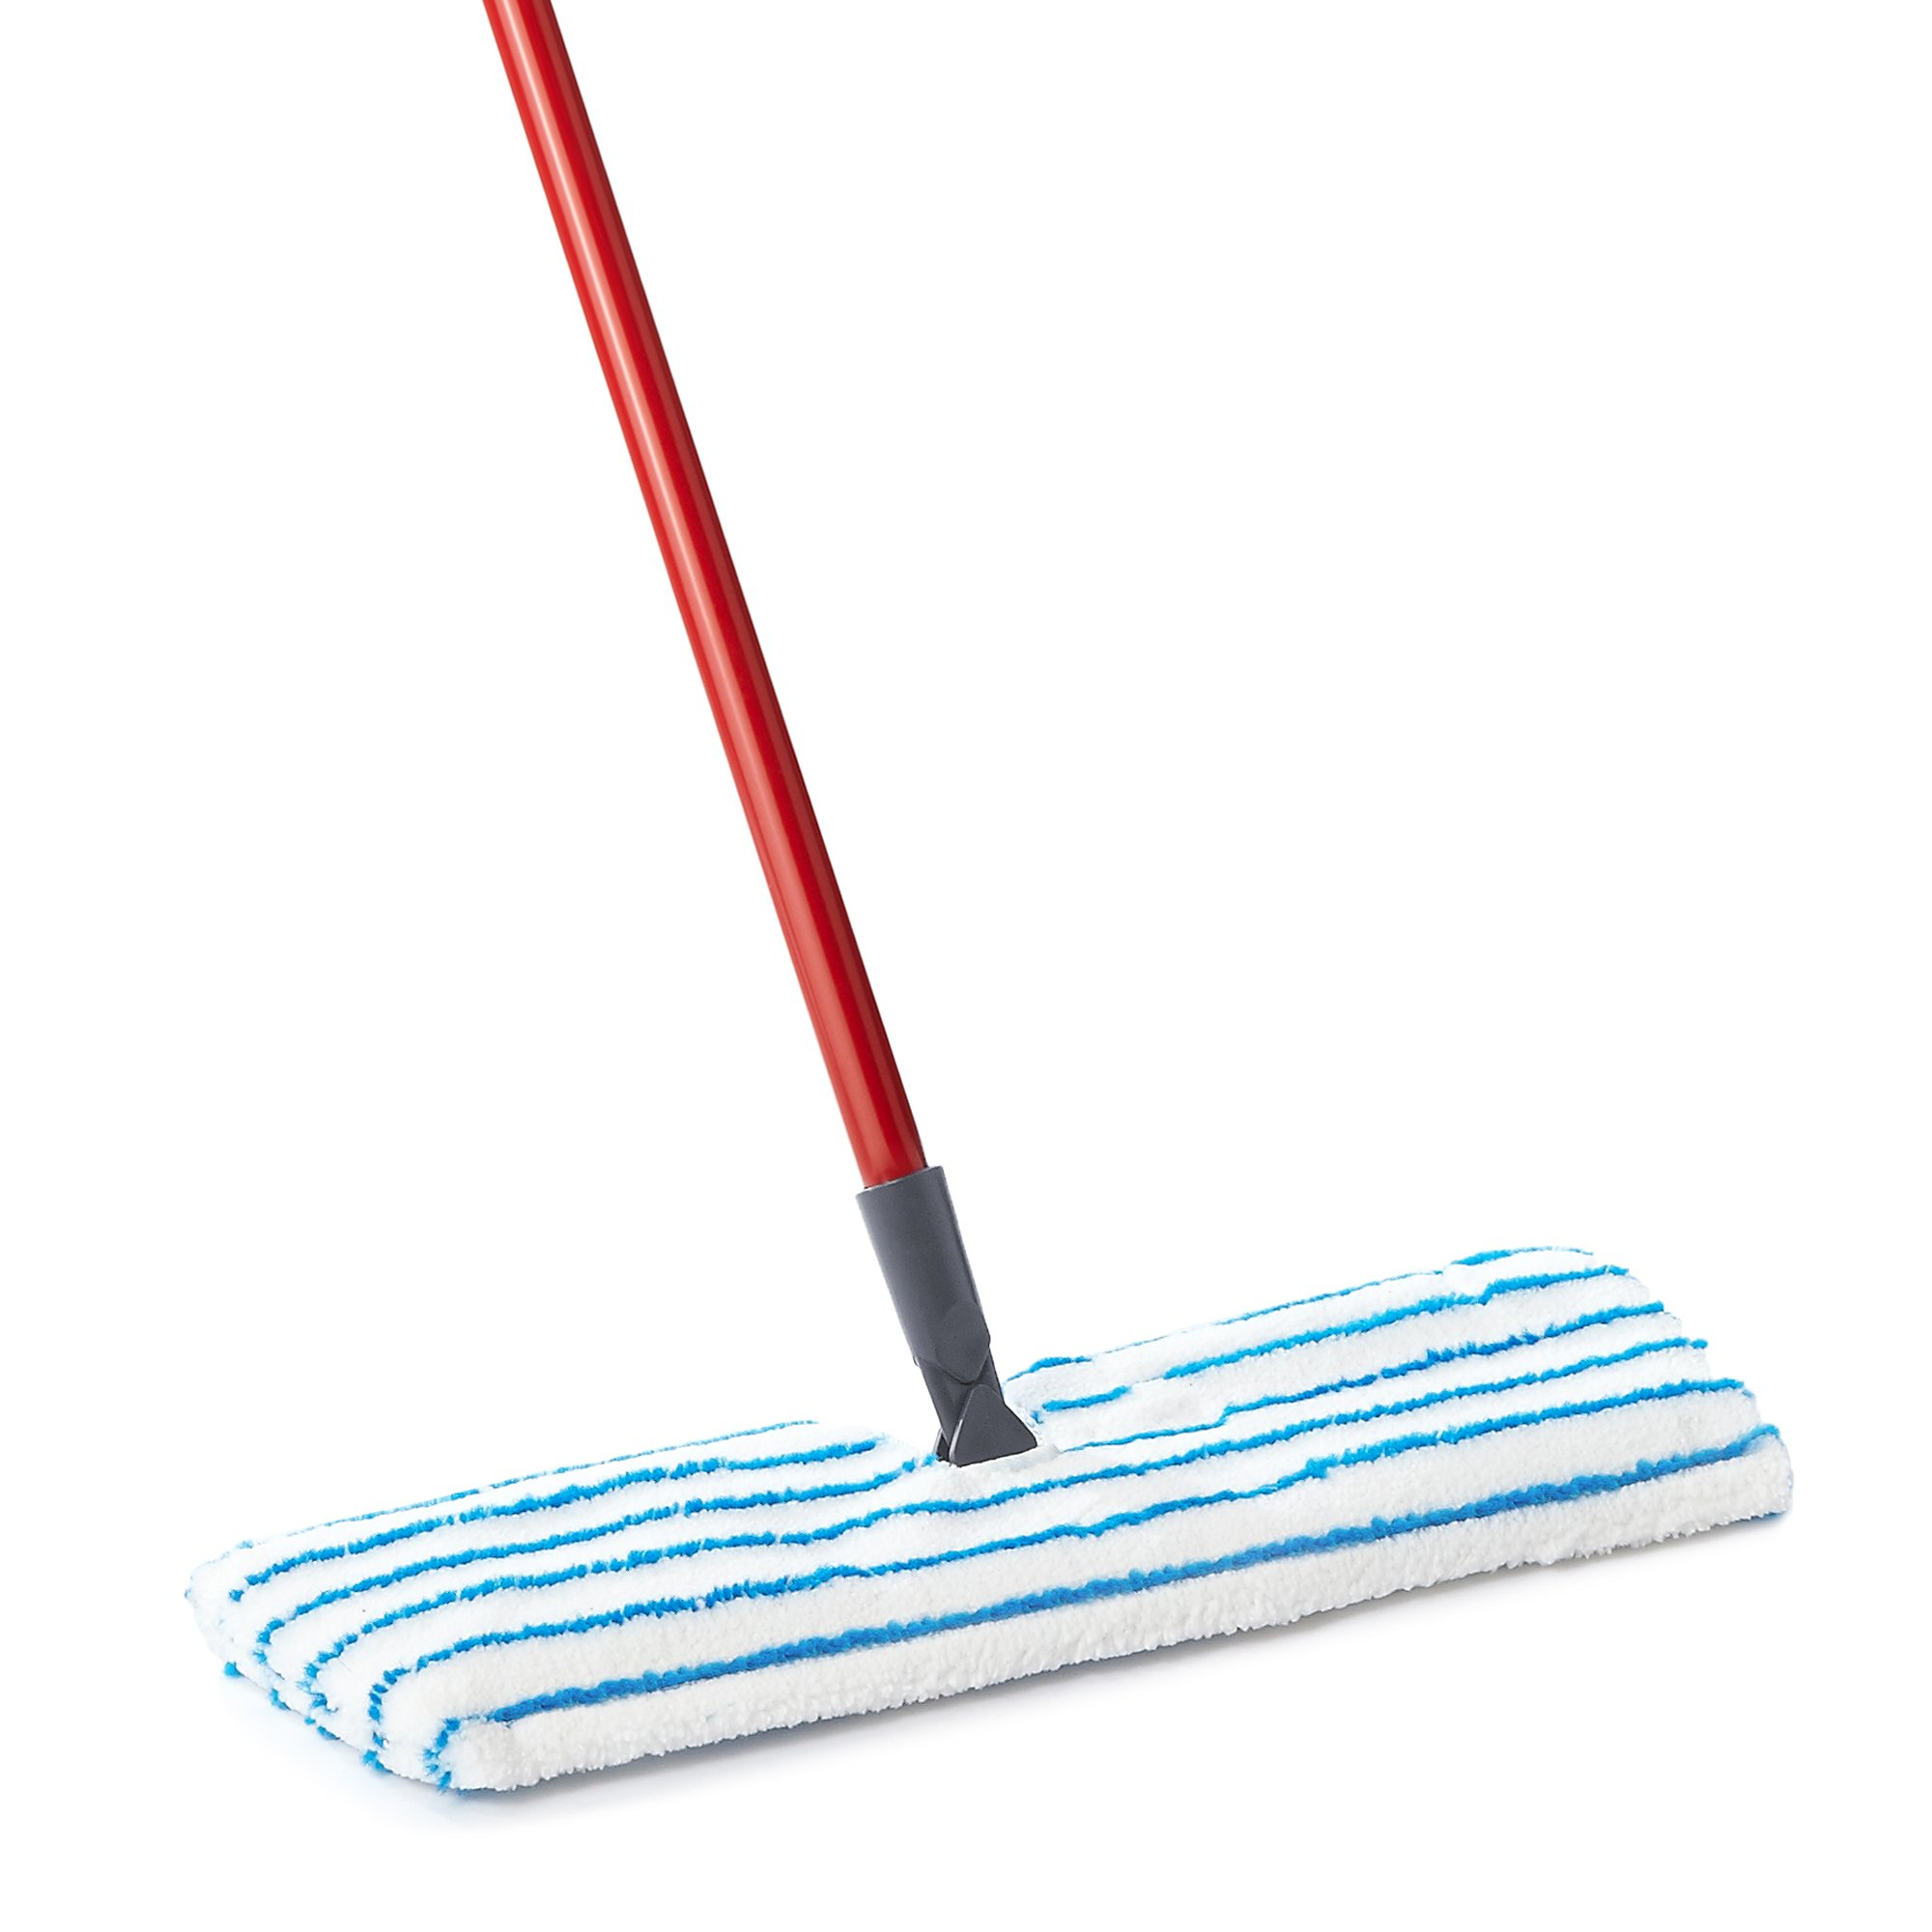 O-Cedar Microfiber Flip Mop Damp/Dry All Surface Mop